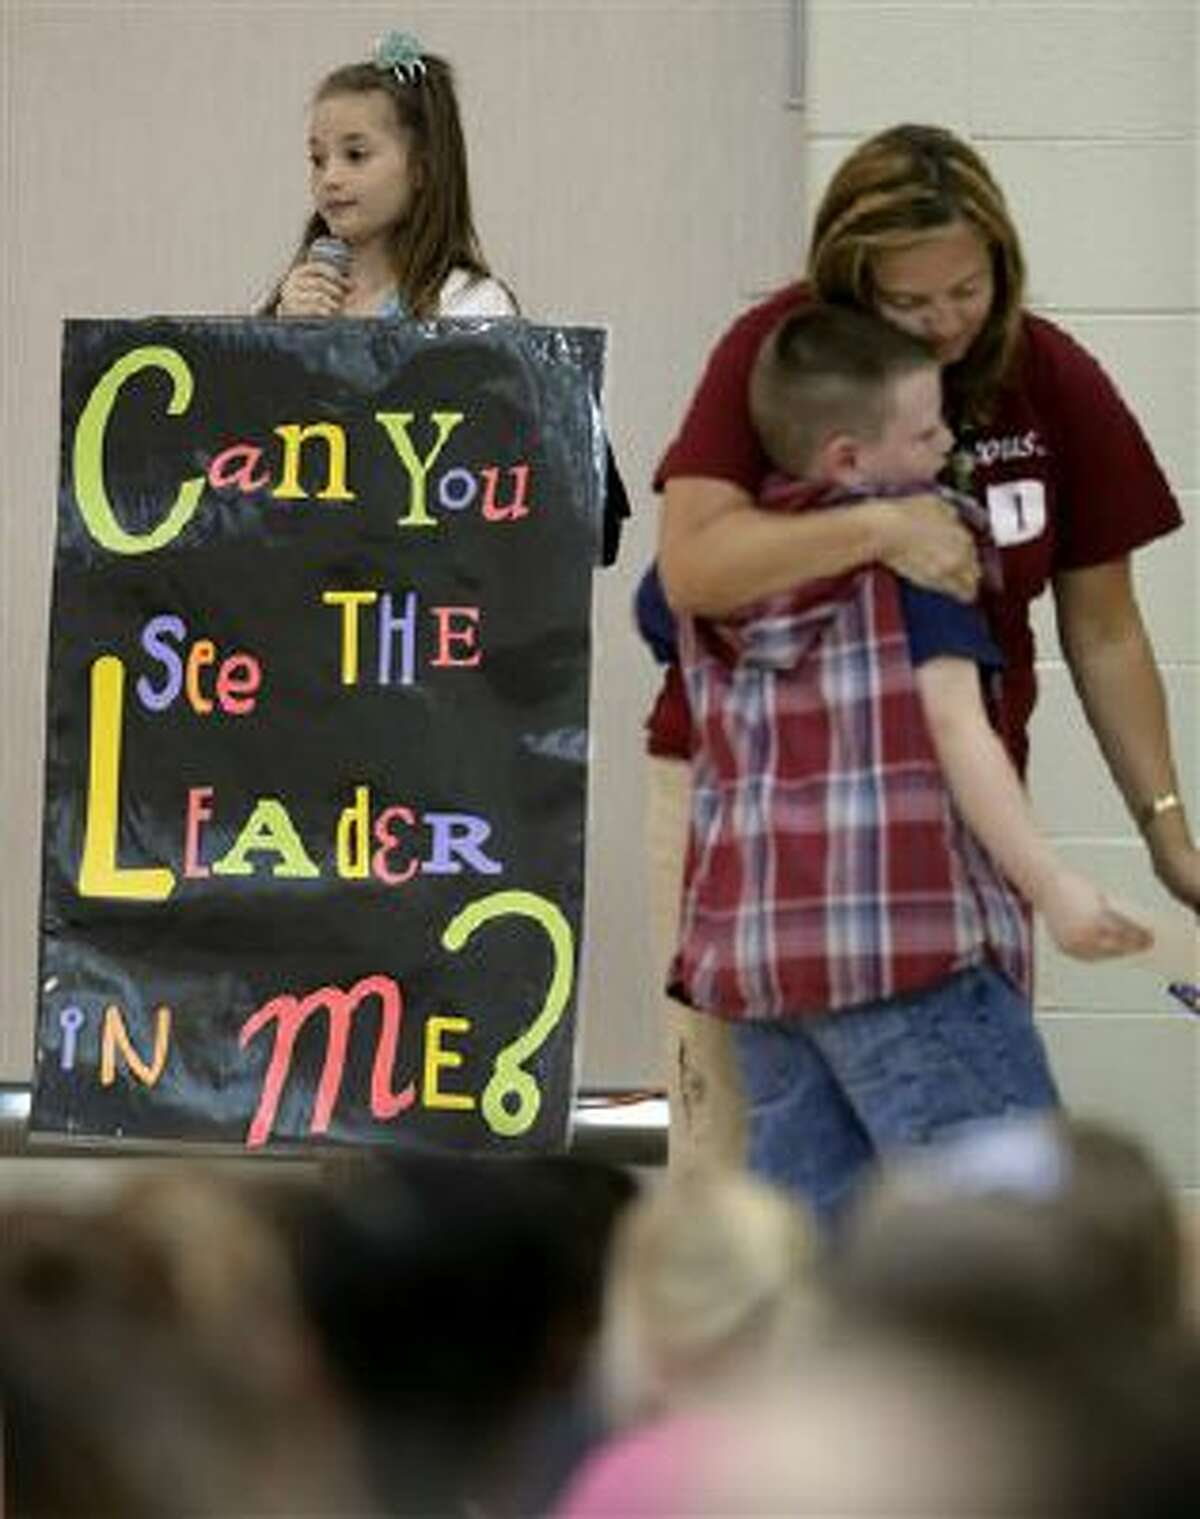 In this photo taken Friday, Sept. 6, 2013, third-grader Jonathan Kent gets a hug from his teacher Mandy Brown after getting an award during a monthly leadership assembly presided over by fourth-grader Anita Bedworth at Indian Trails Elementary school in Independence, Mo.